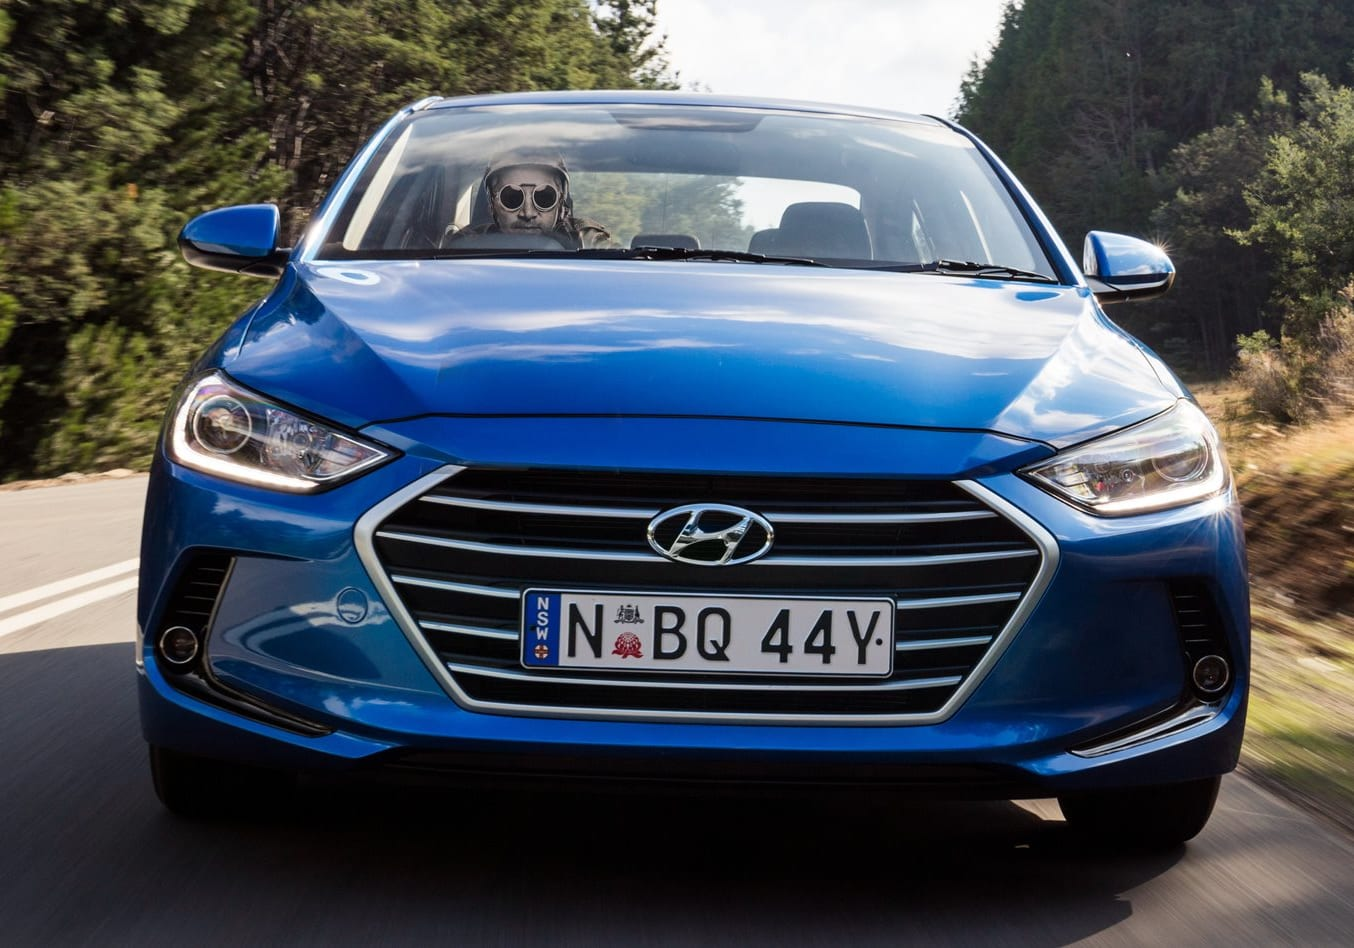 Stephen Corby quenches the midlife crisis by buying a Hyundai